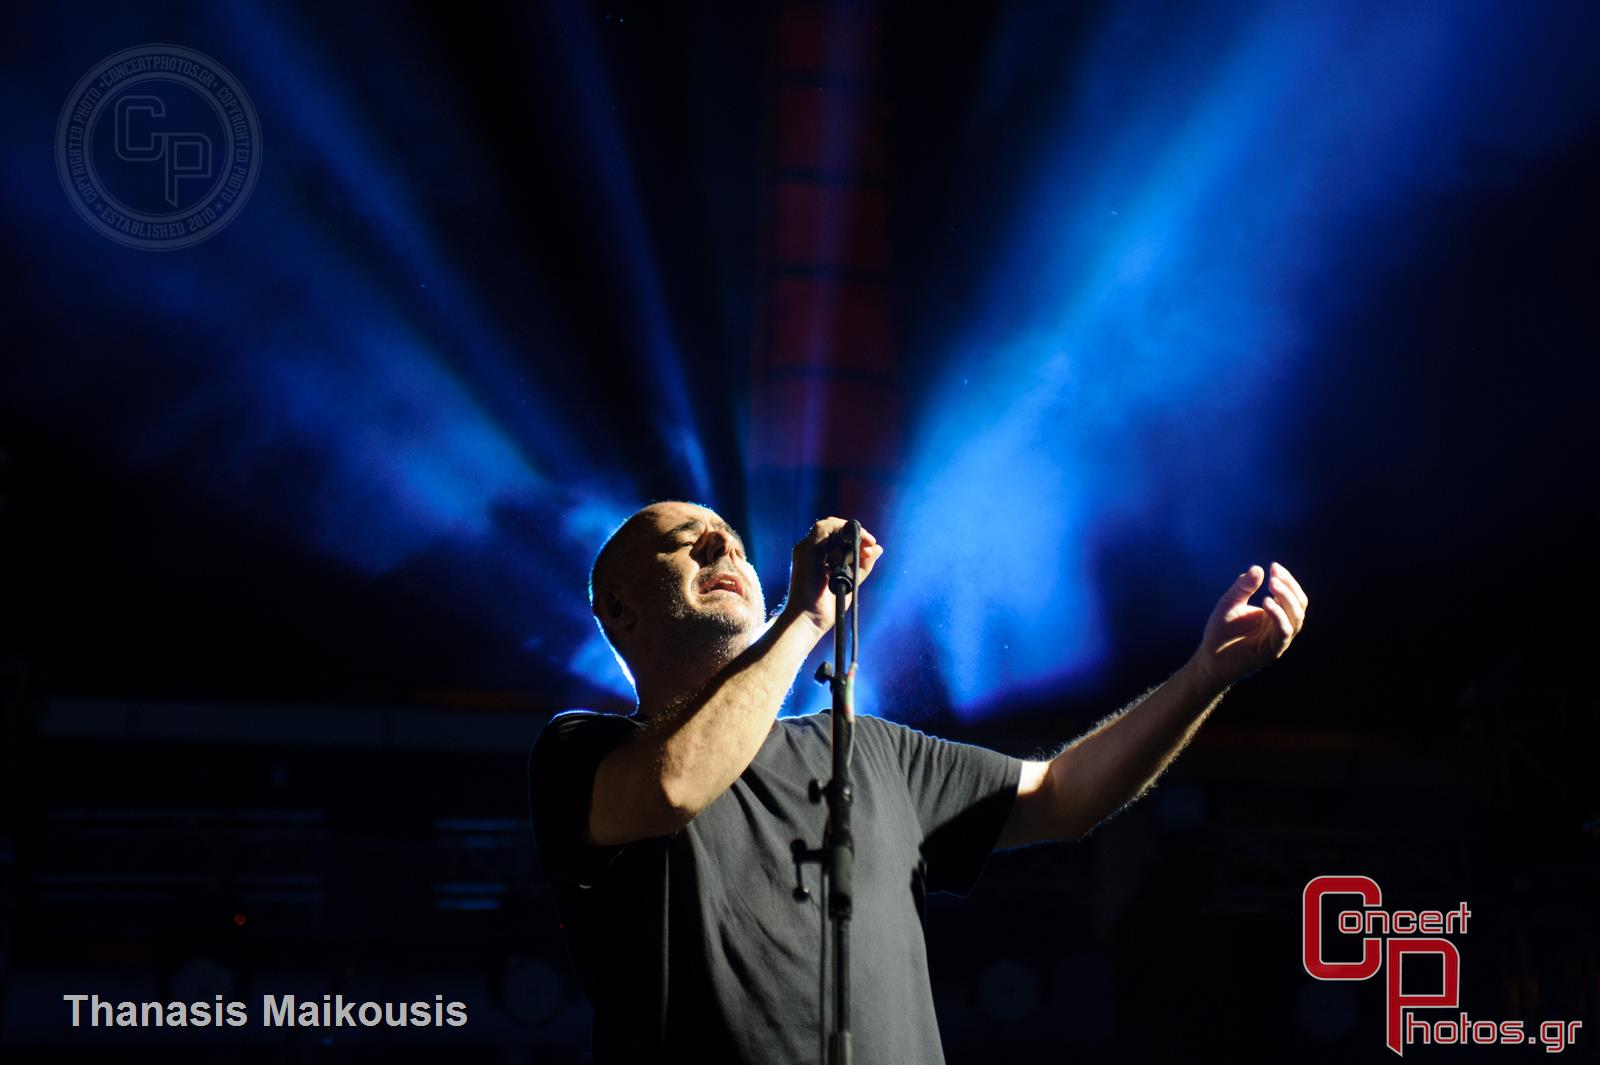 VIC-VIC-Technopolis photographer: Thanasis Maikousis - concertphotos_20150925_21_23_28